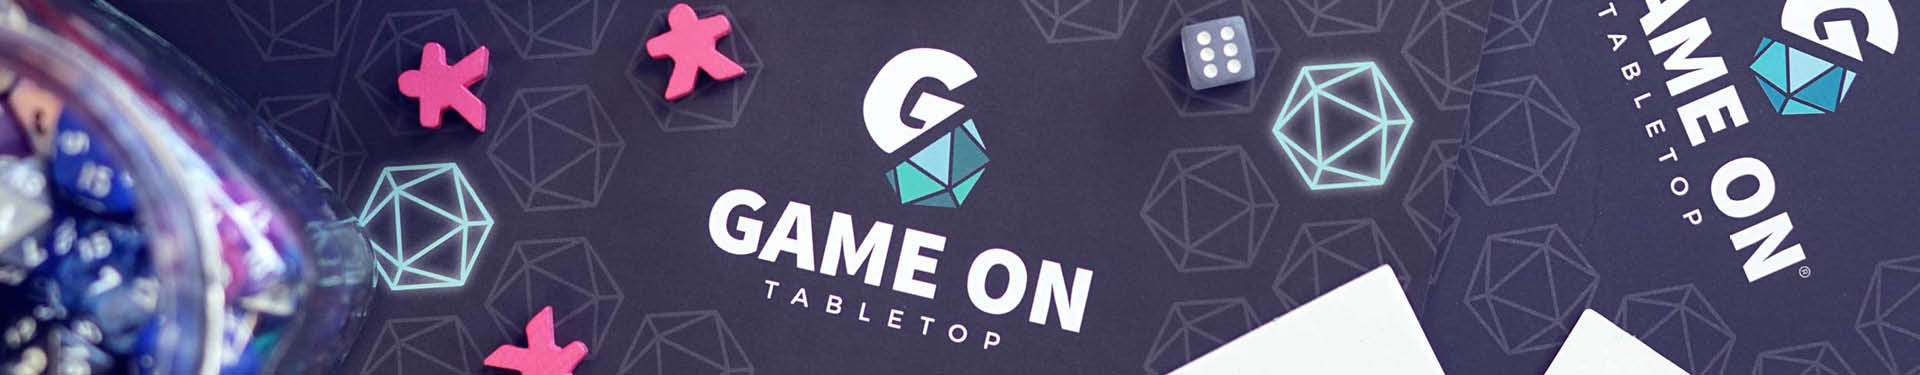 Game On Tabletop